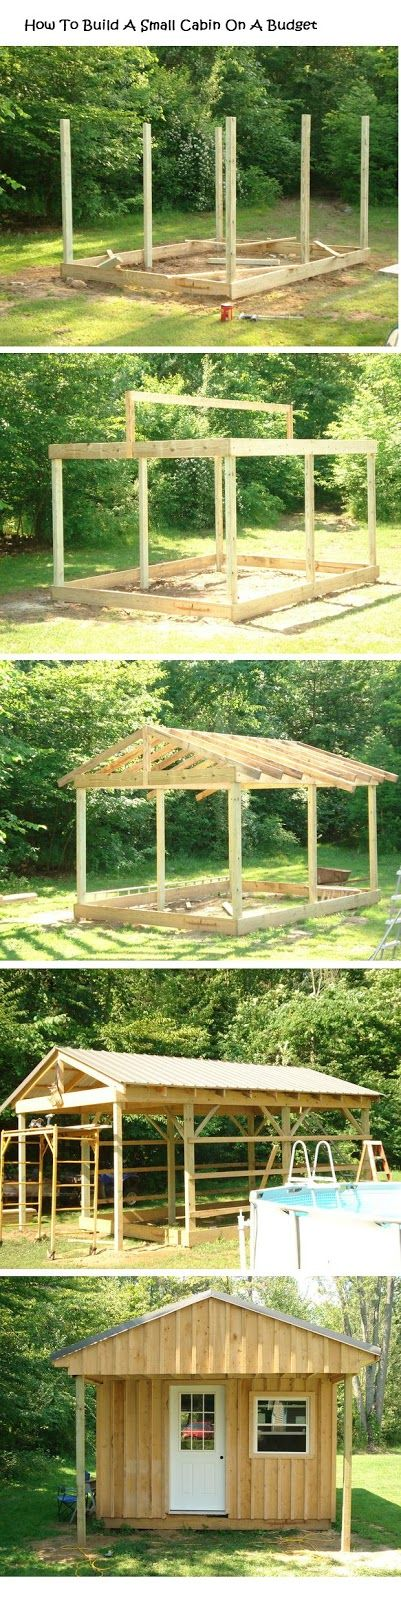 How To Build A Small Cabin On A Budget Wood Pinterest Cabane - budget pour construire une maison